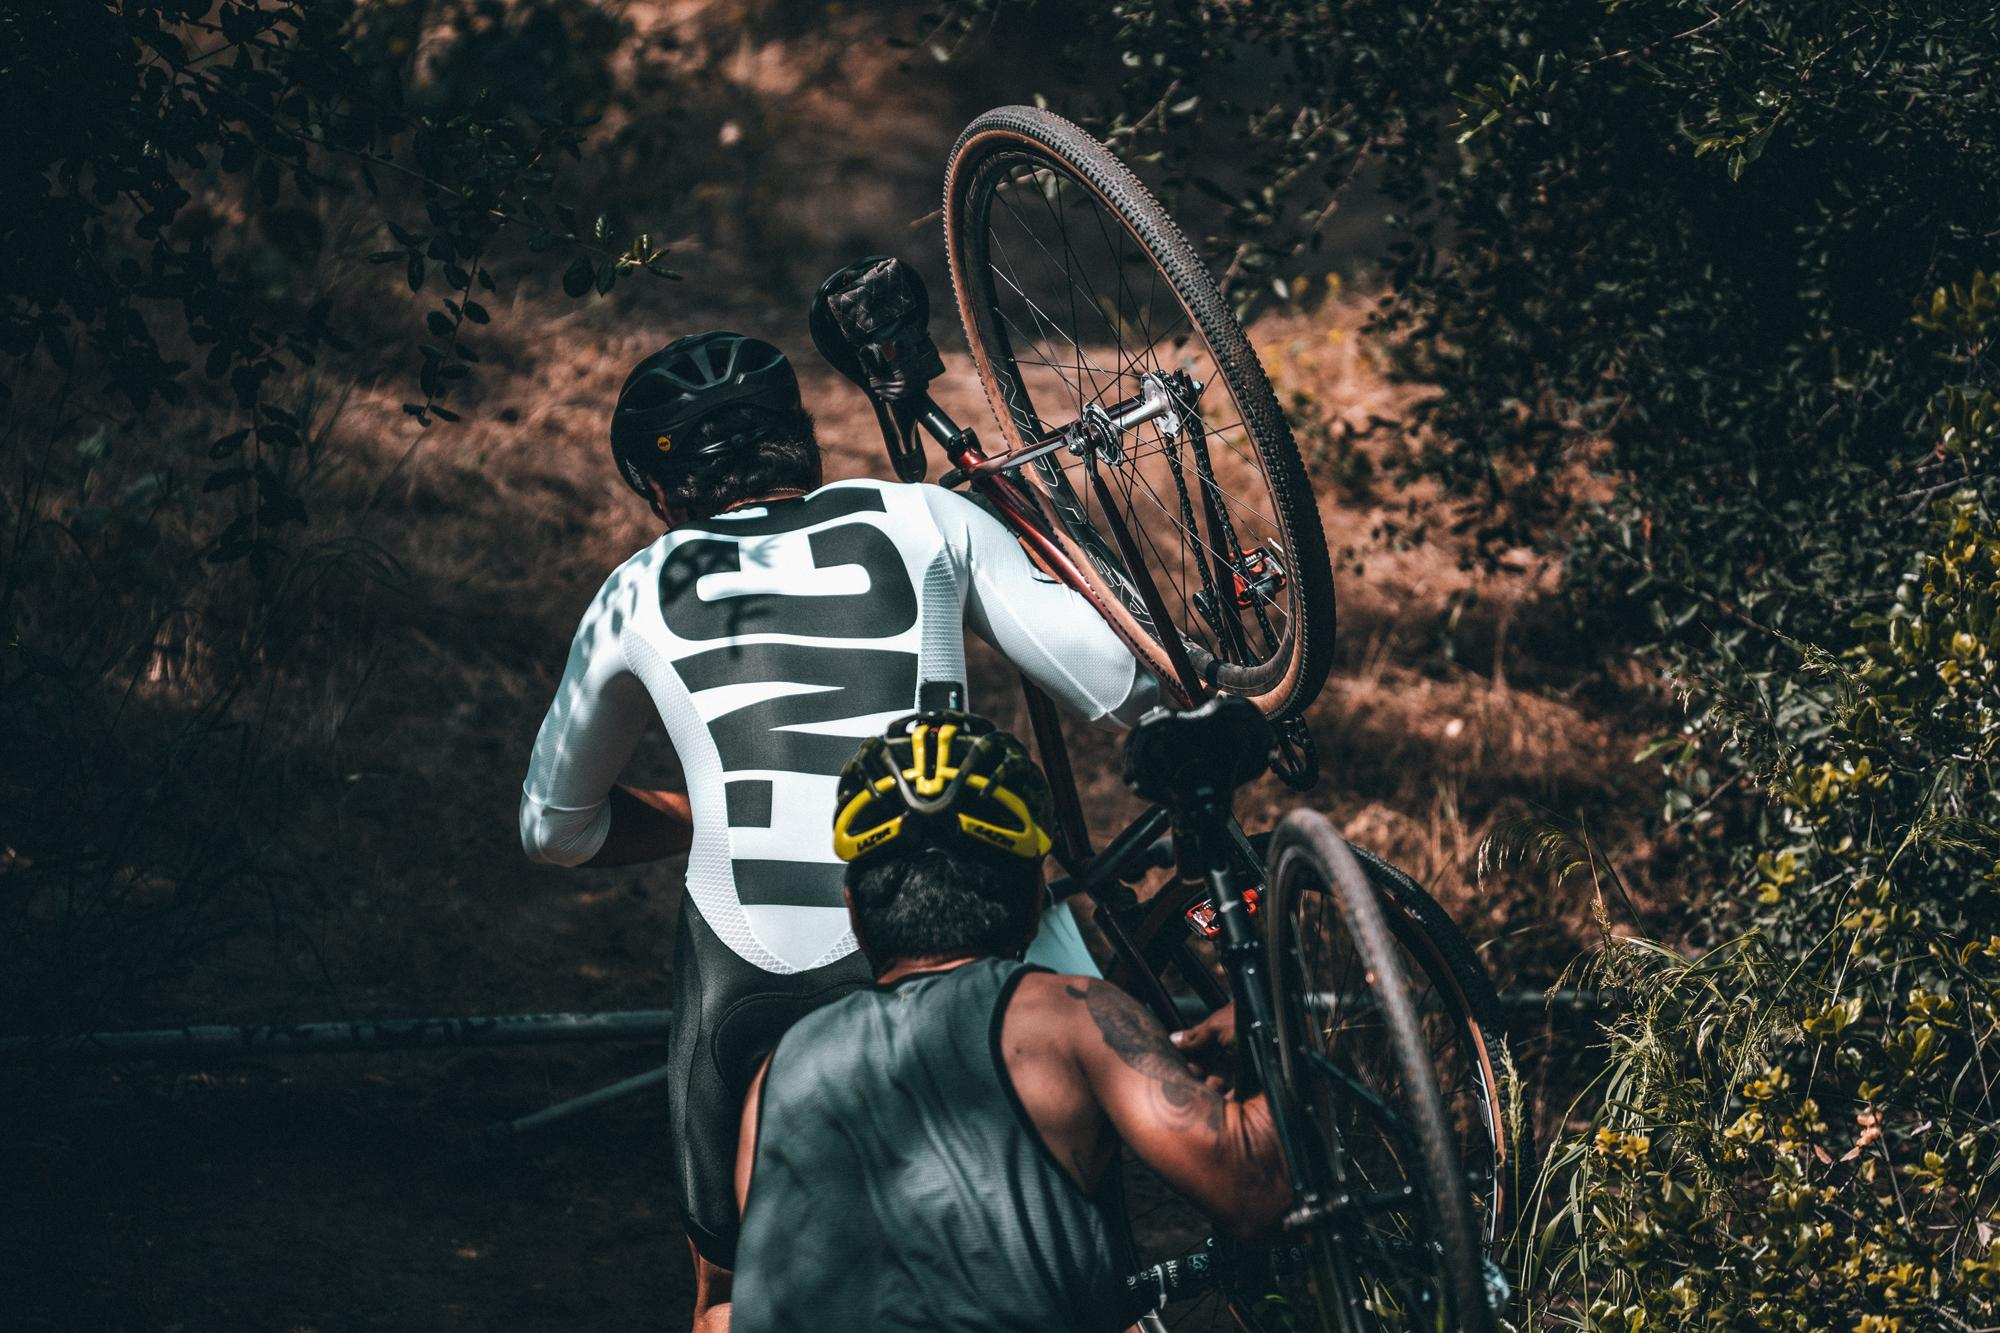 The Los Angeles Tracklocross SeriesFixedGear_Tracklocross_LA2019_WheelTalk-07545